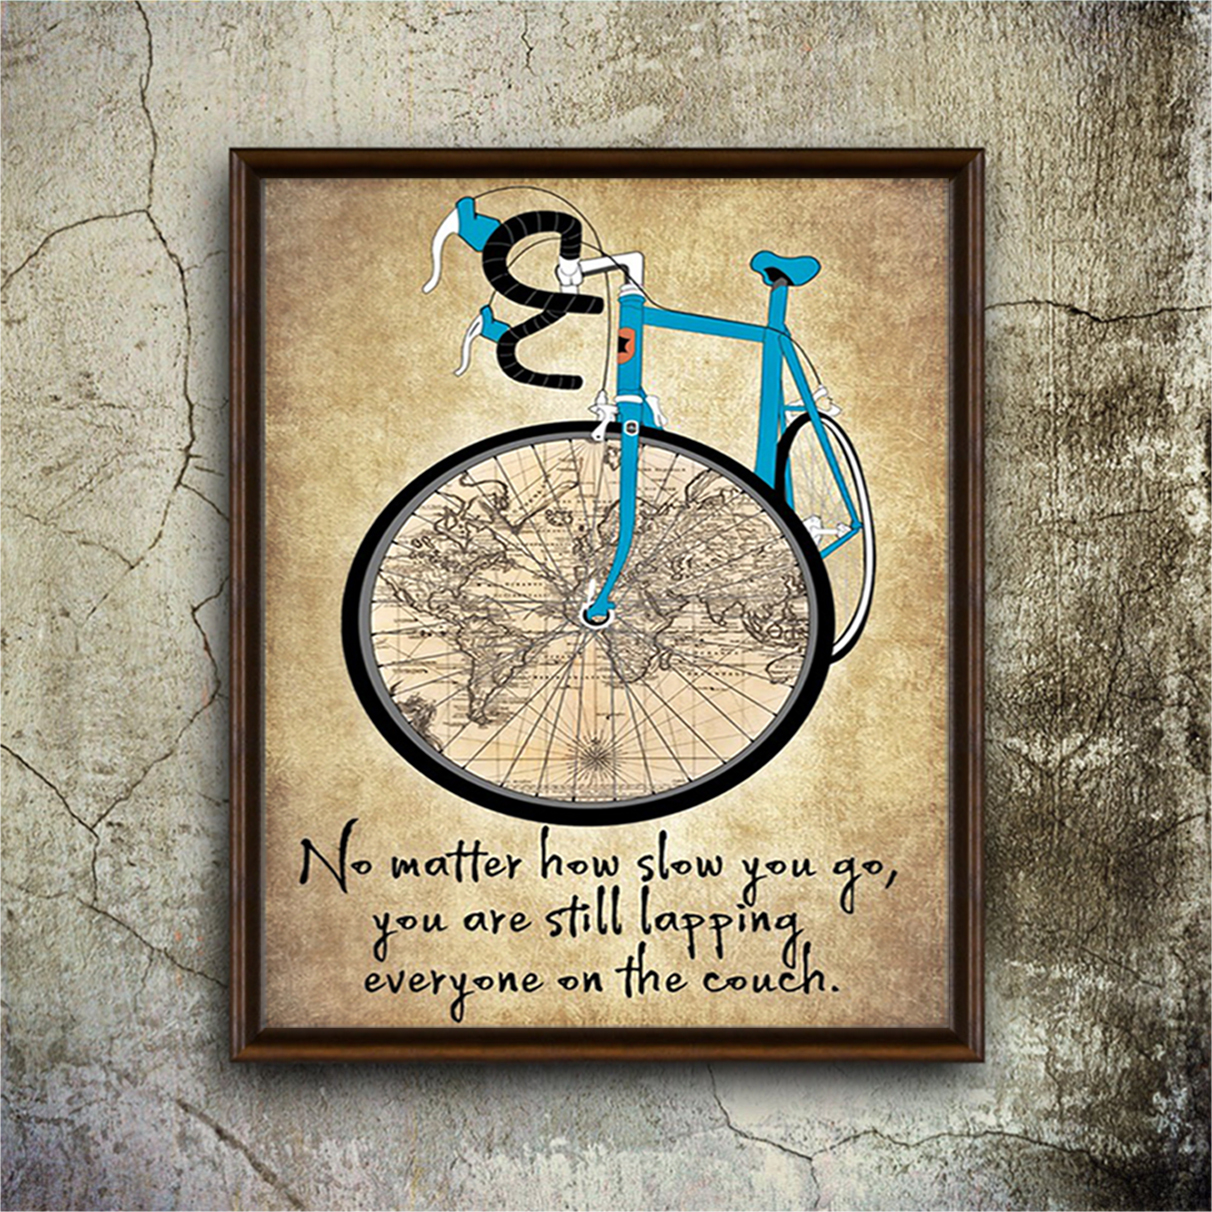 Cycling no matter how slow you go poster A2